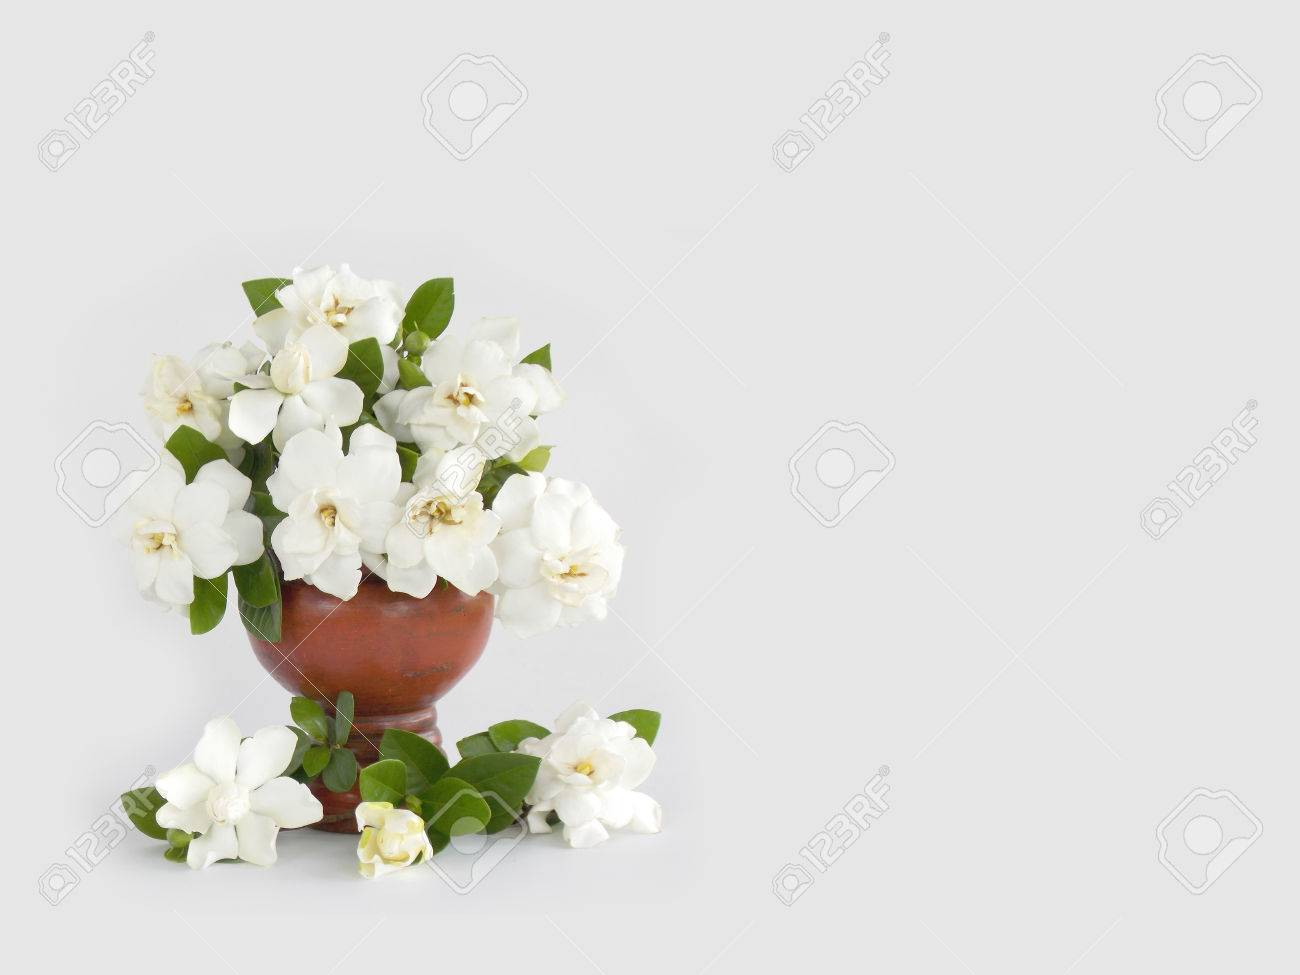 Beautiful White Gardenia Flower Background Stock Photo, Picture And ...